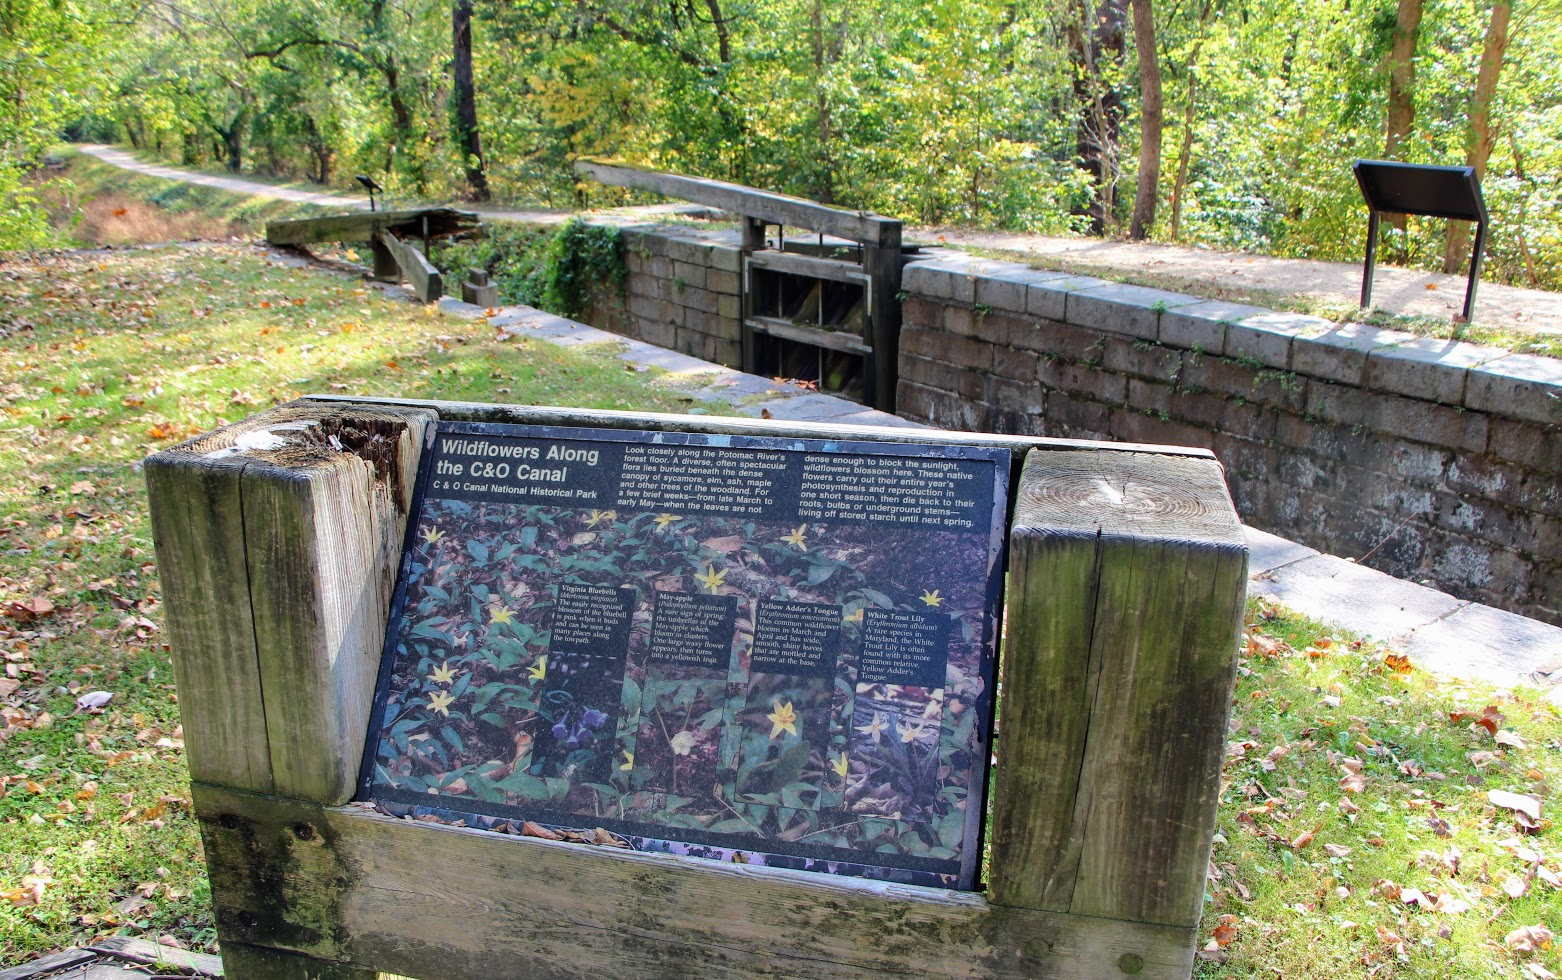 c&o-canal-14